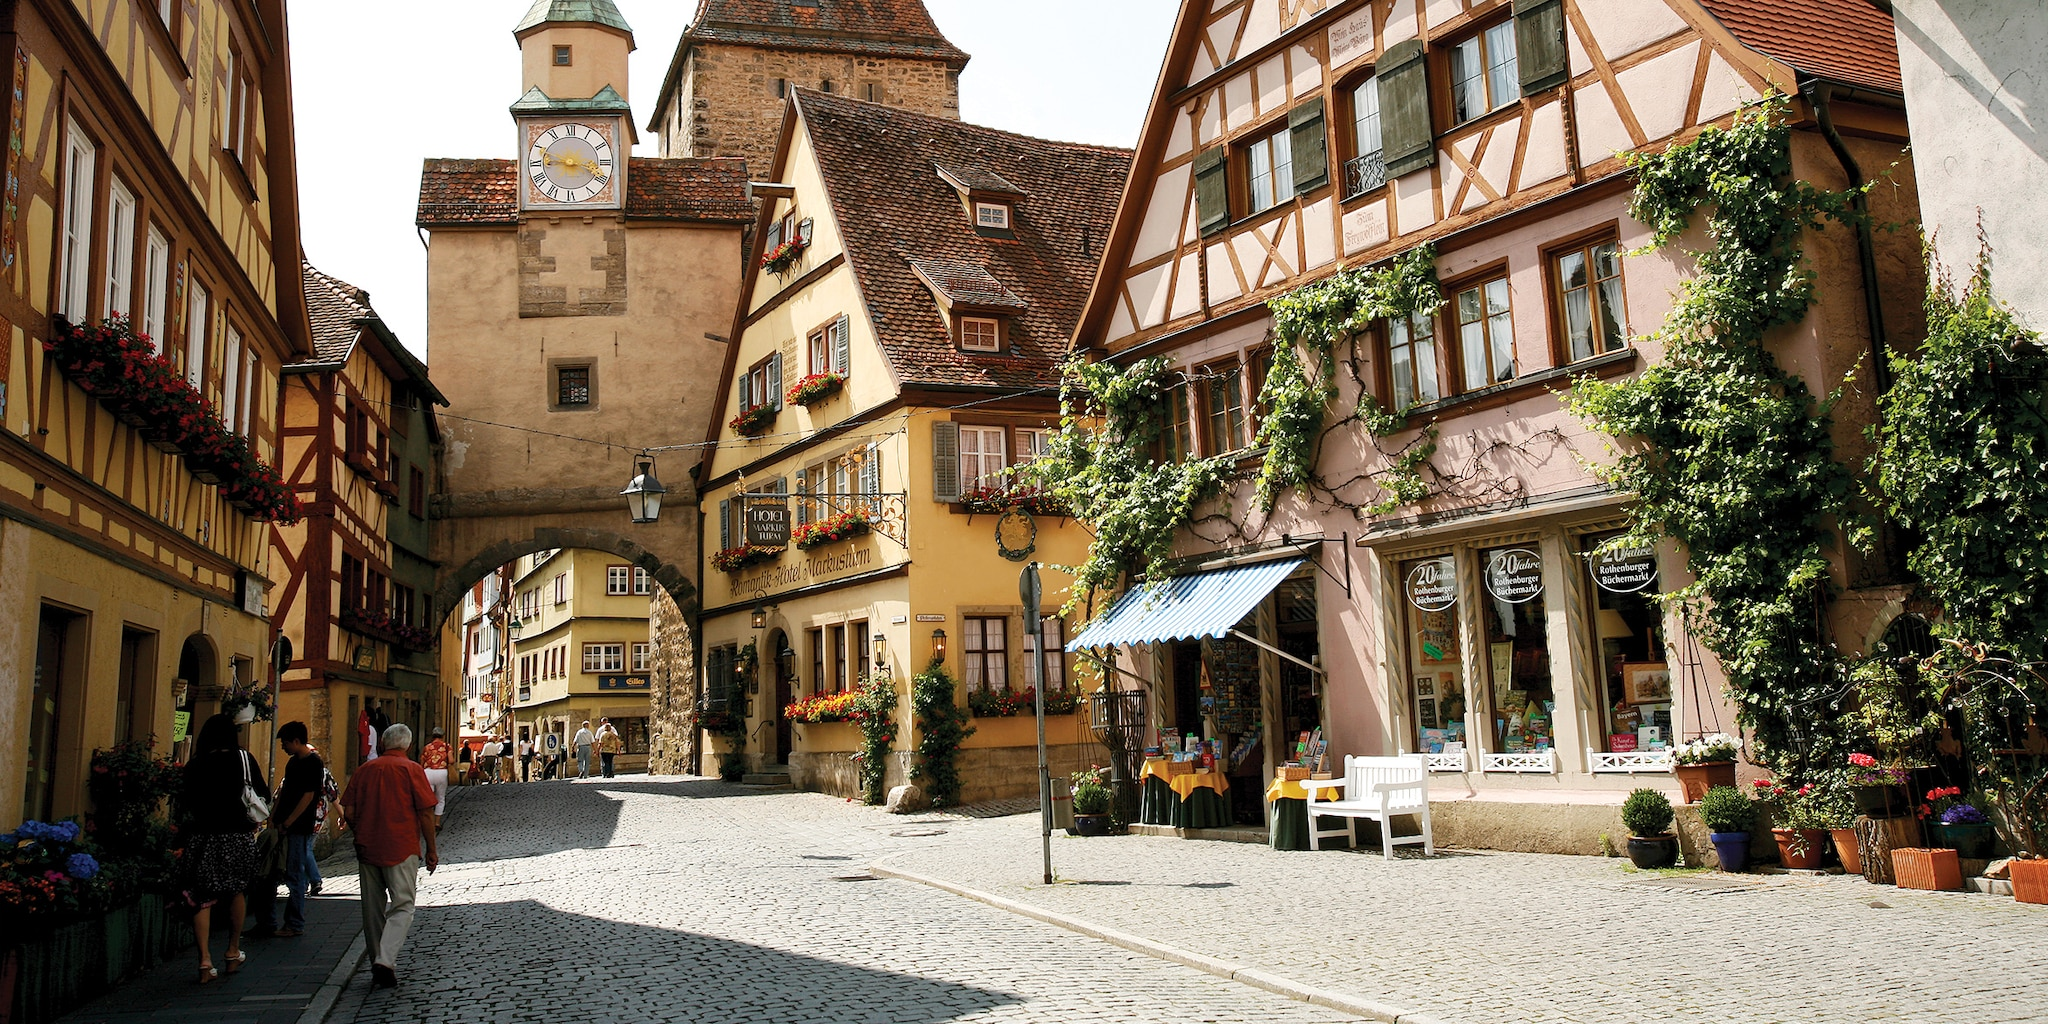 Visit Rothenburg on the Germany tour